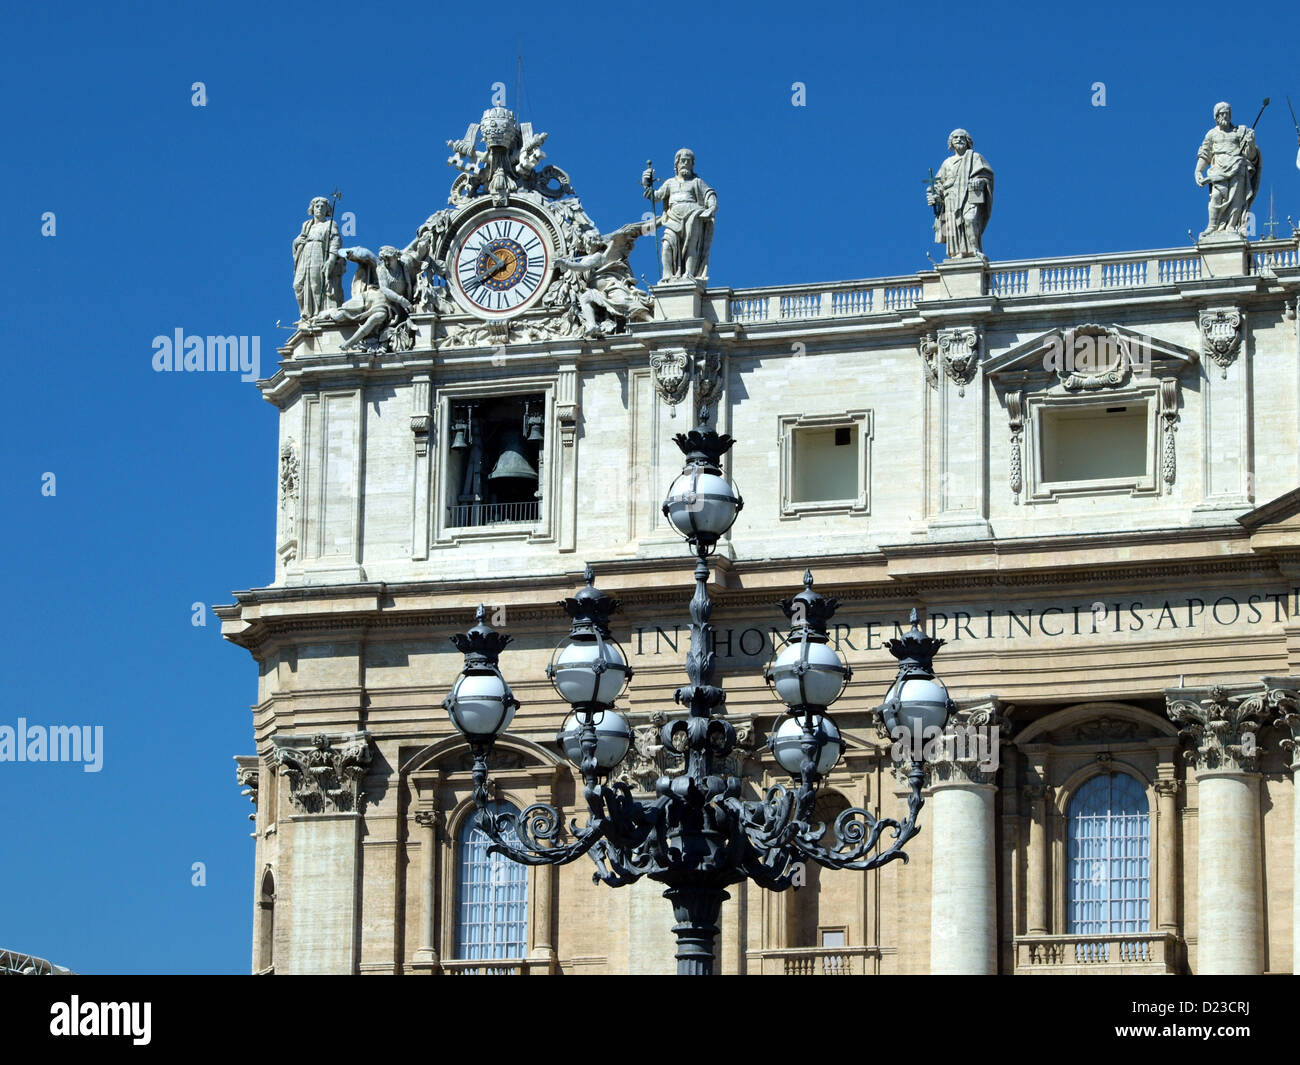 Lantern and Bells at St Peter square. - Stock Image